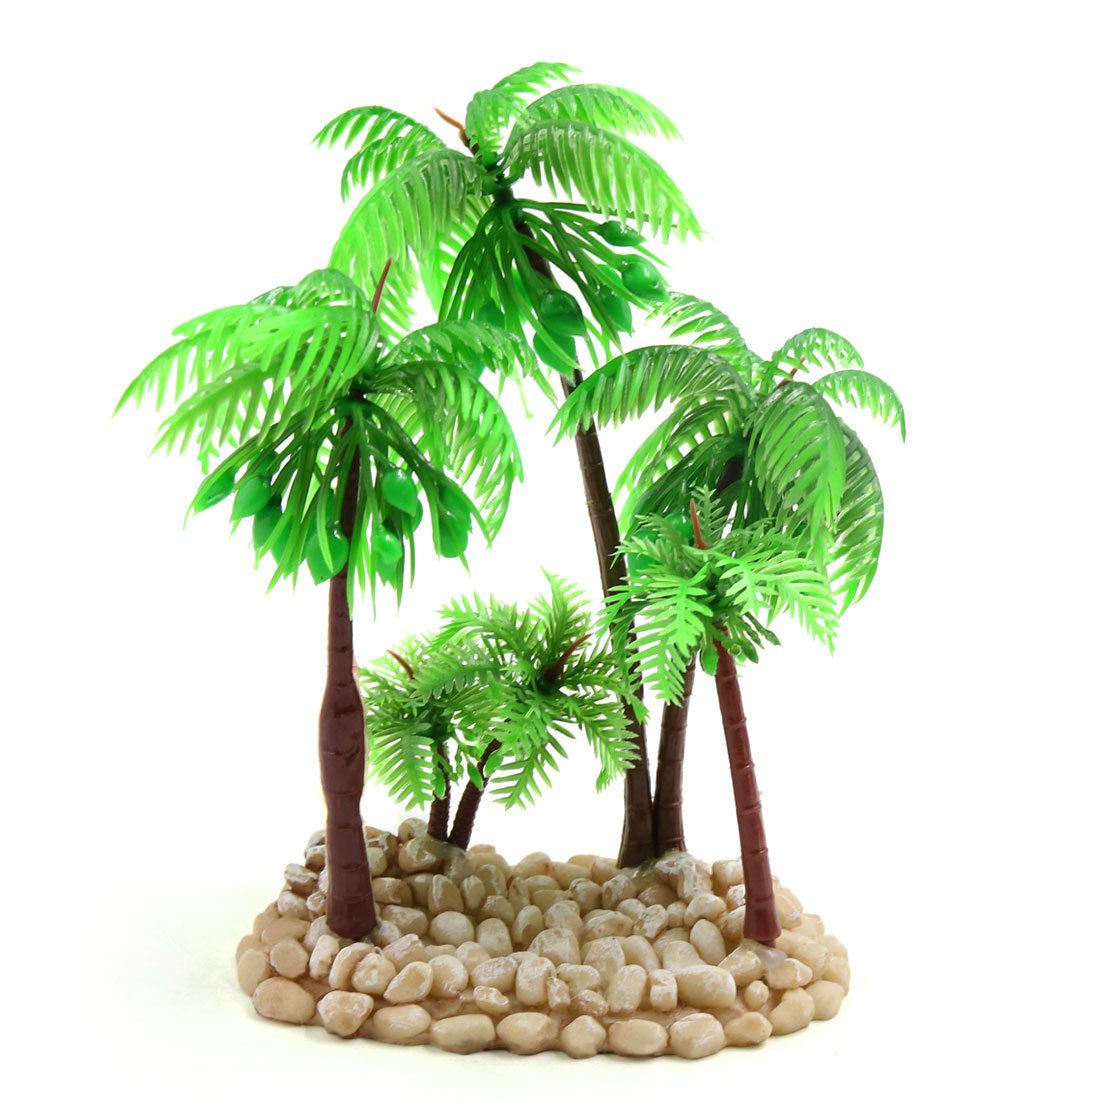 Terrarium Reptile Tank Decorative Plant Coconut Tree for Reptiles Amphibians